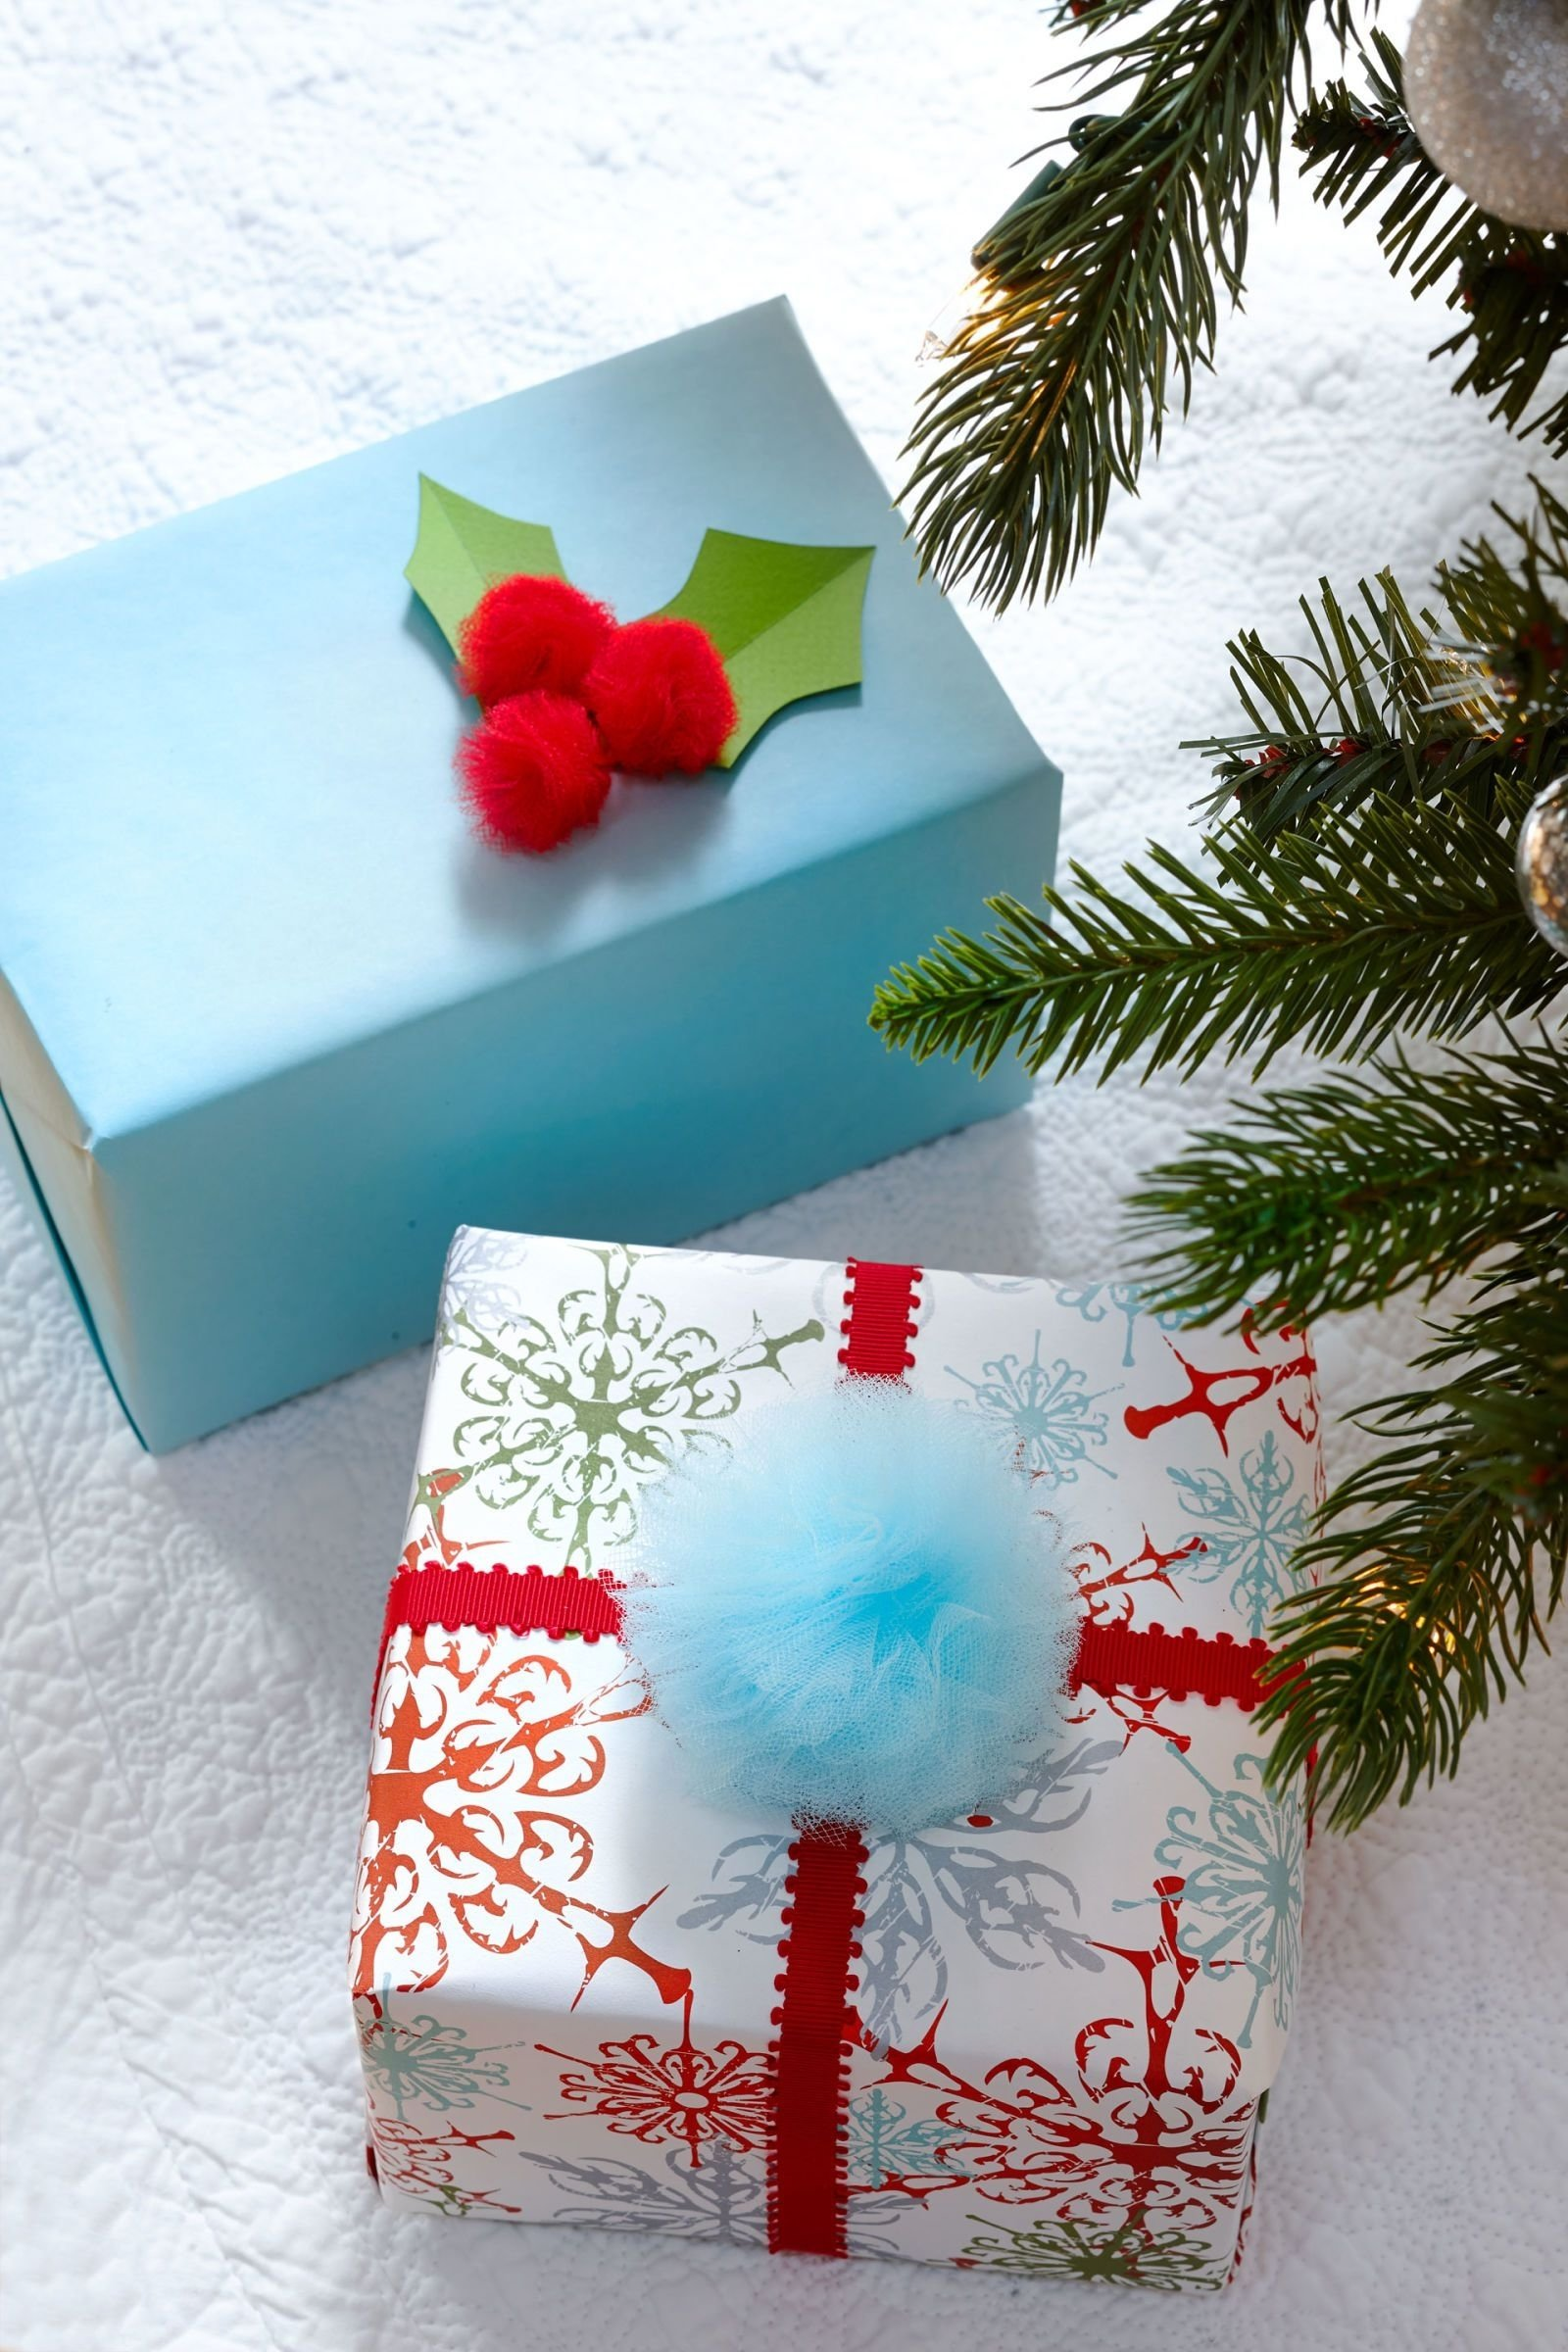 10 Unique Gift Wrapping Ideas For Christmas 35 unique christmas gift wrapping ideas diy holiday gift wrap